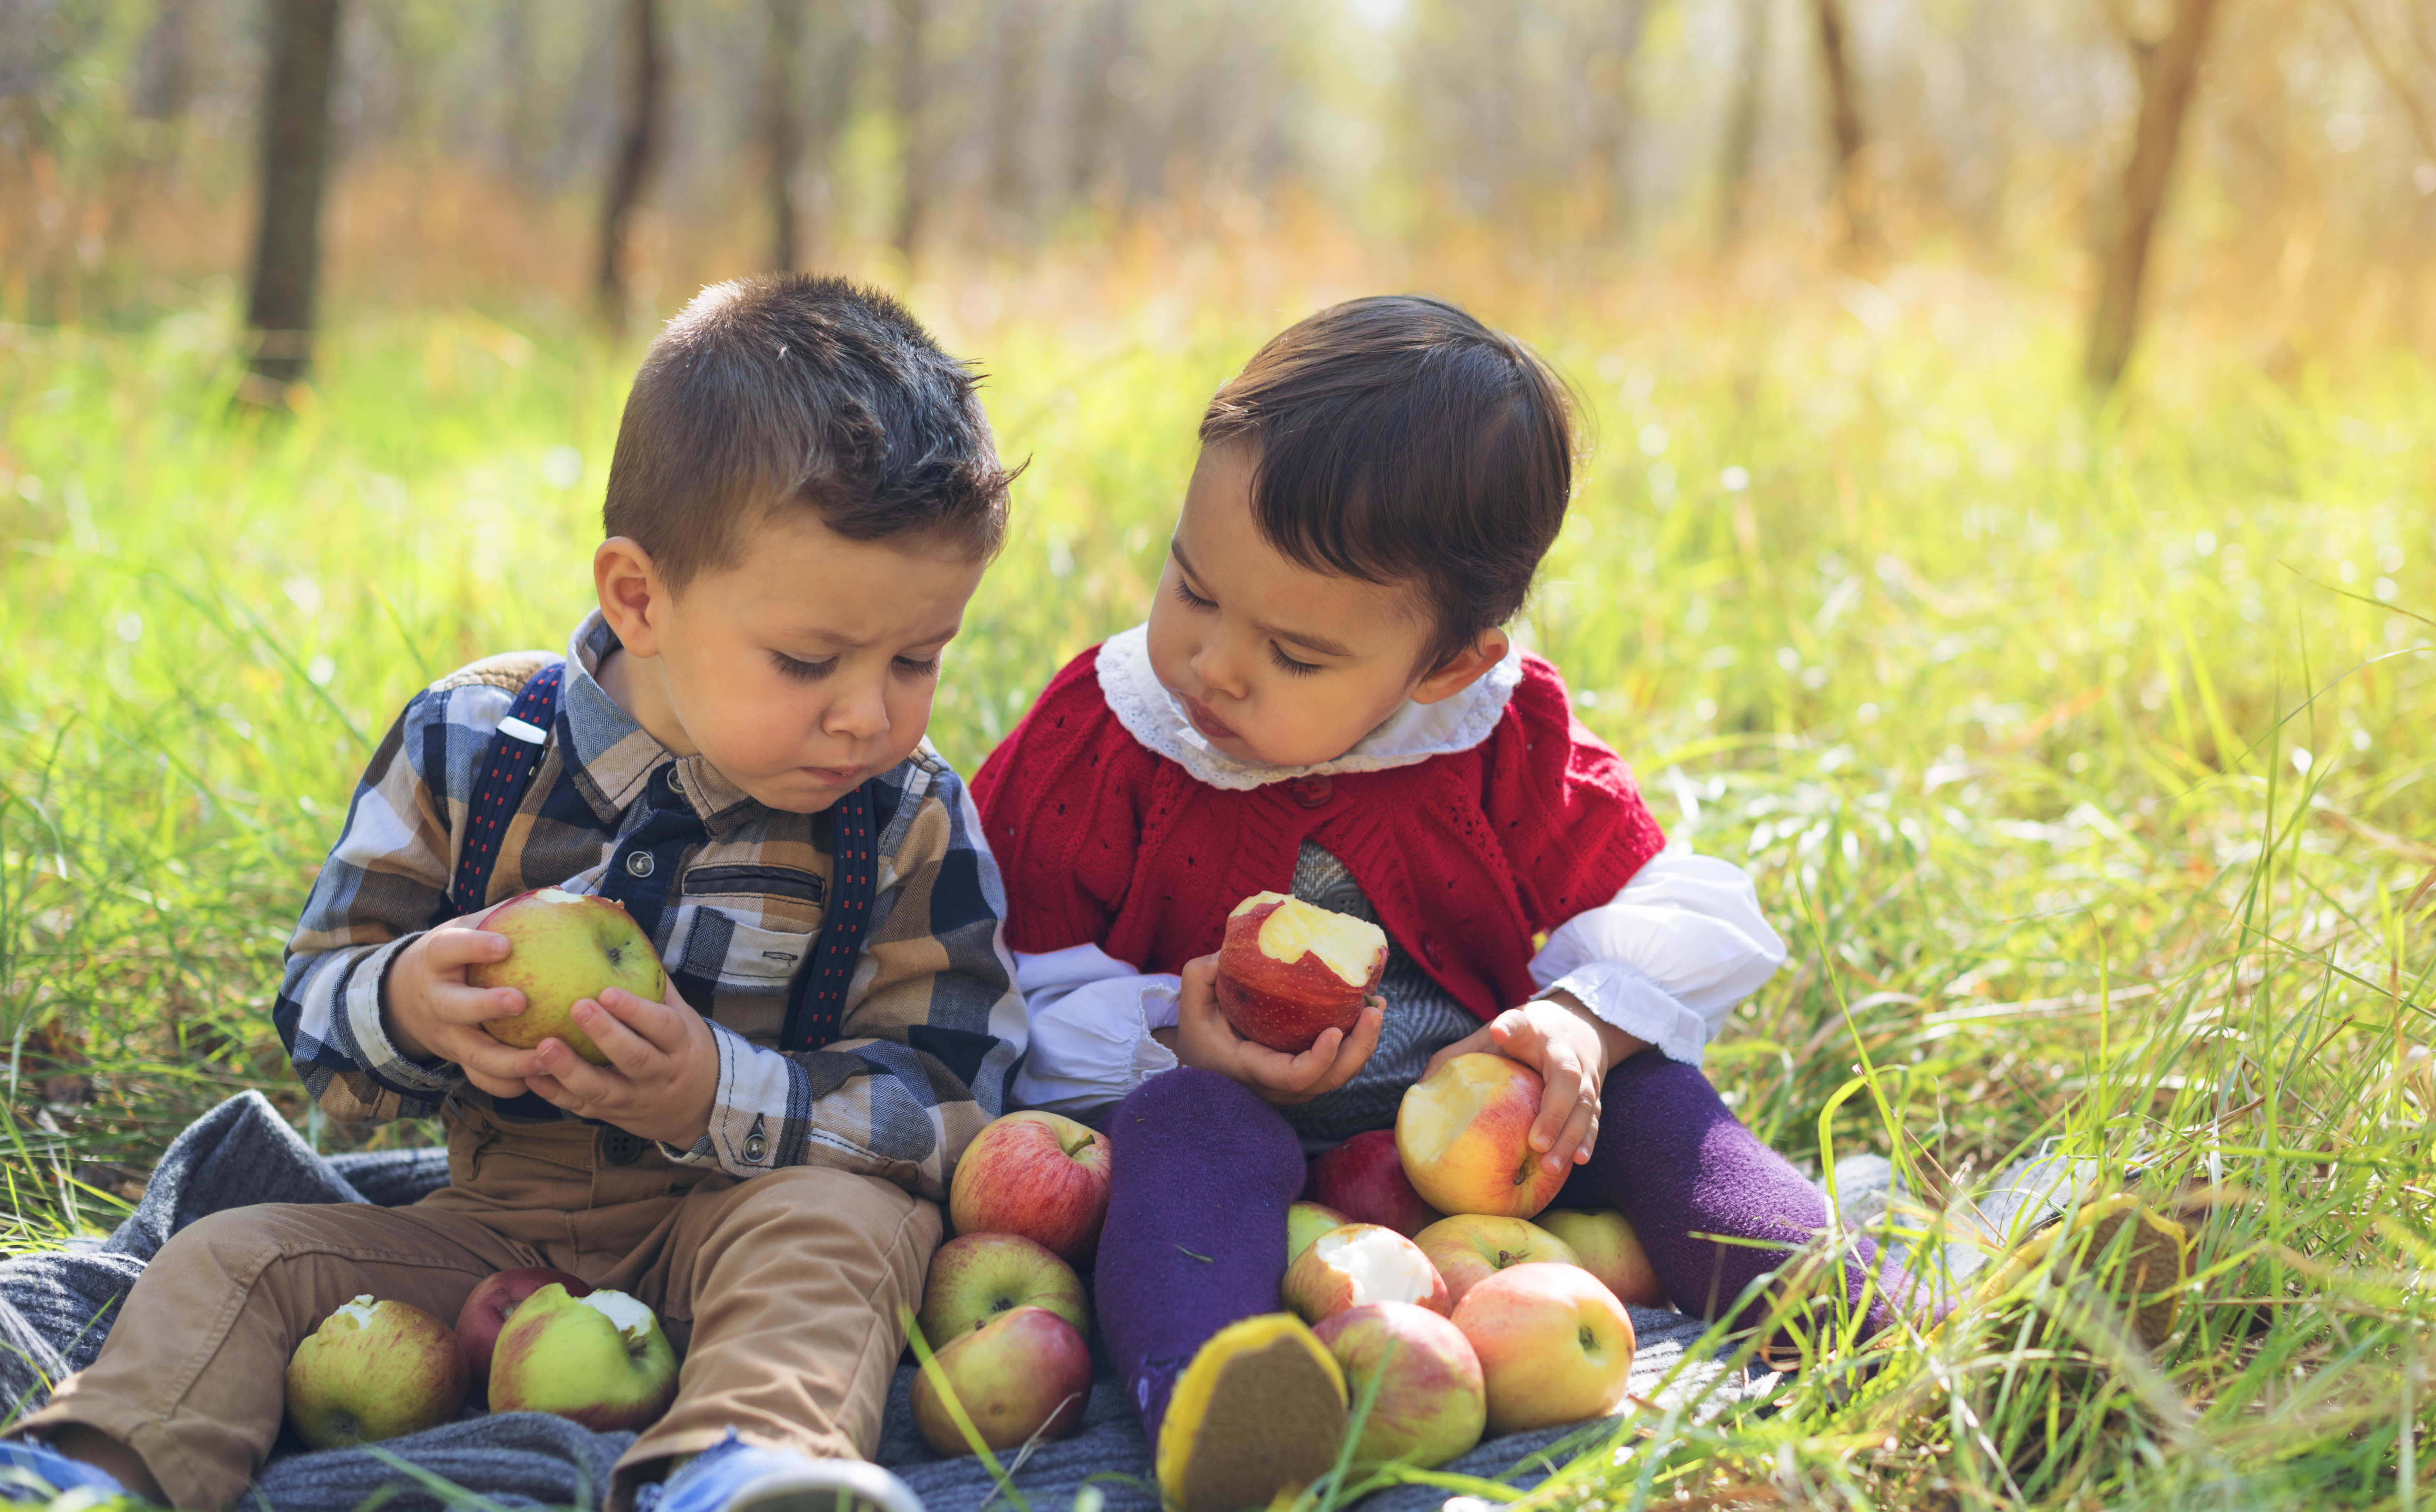 chronic illness in children - GMO's - GMOs - GM foods - GM foods and health - children's health - children's health food - kids health food - kids sickness food